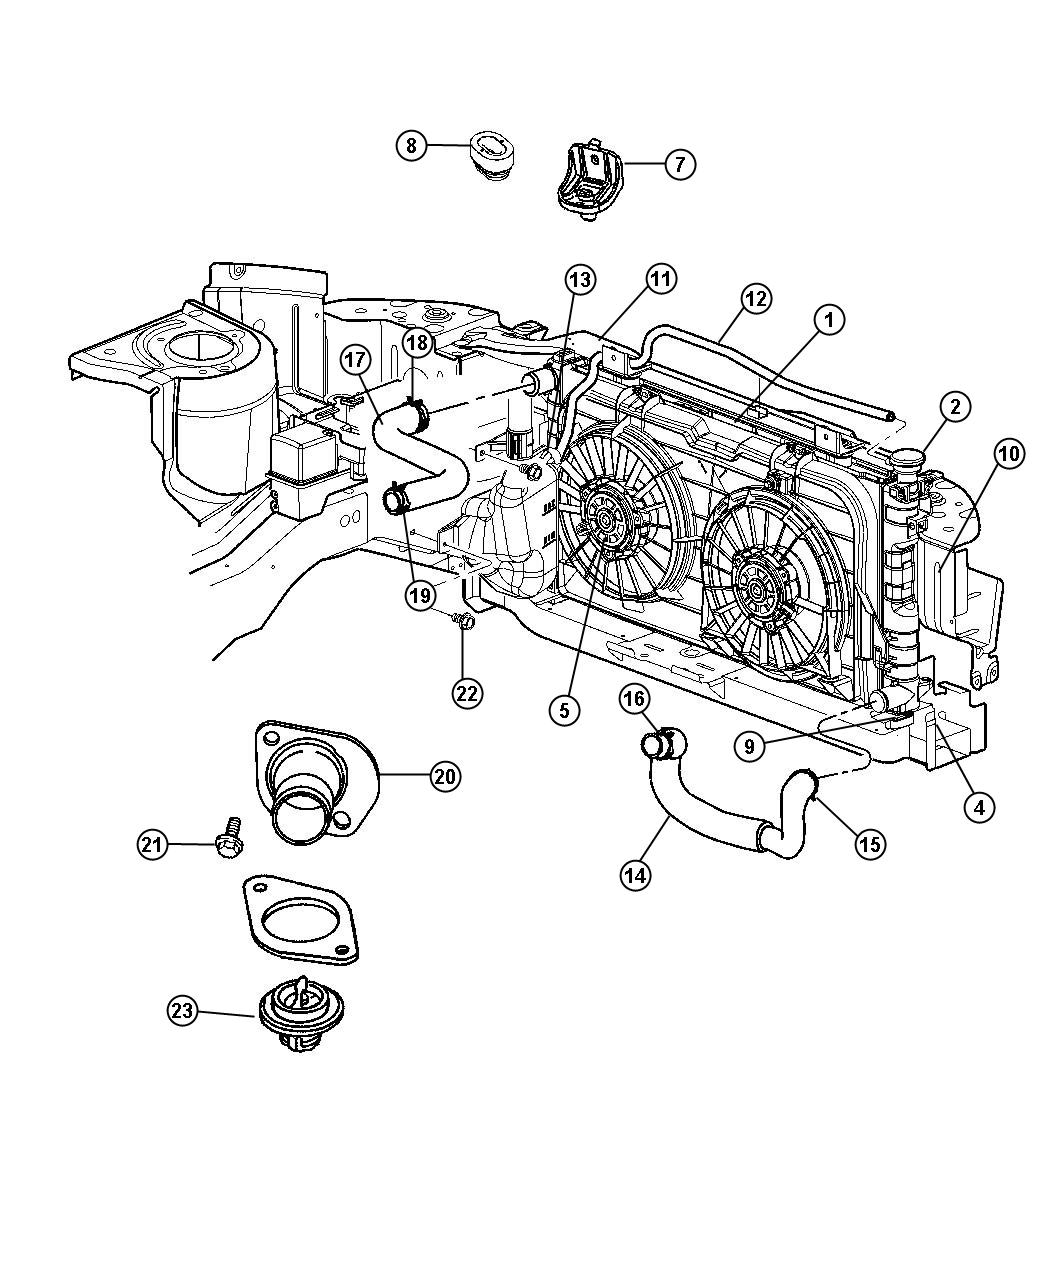 Diagram Radiator and Related Parts 3.3L [[3.3L V6 OHV Engine,3.3L V6 OHV FFV Engine]] 3.8L [3.8L V6 OHV Engine]. for your 2018 Dodge Grand Caravan